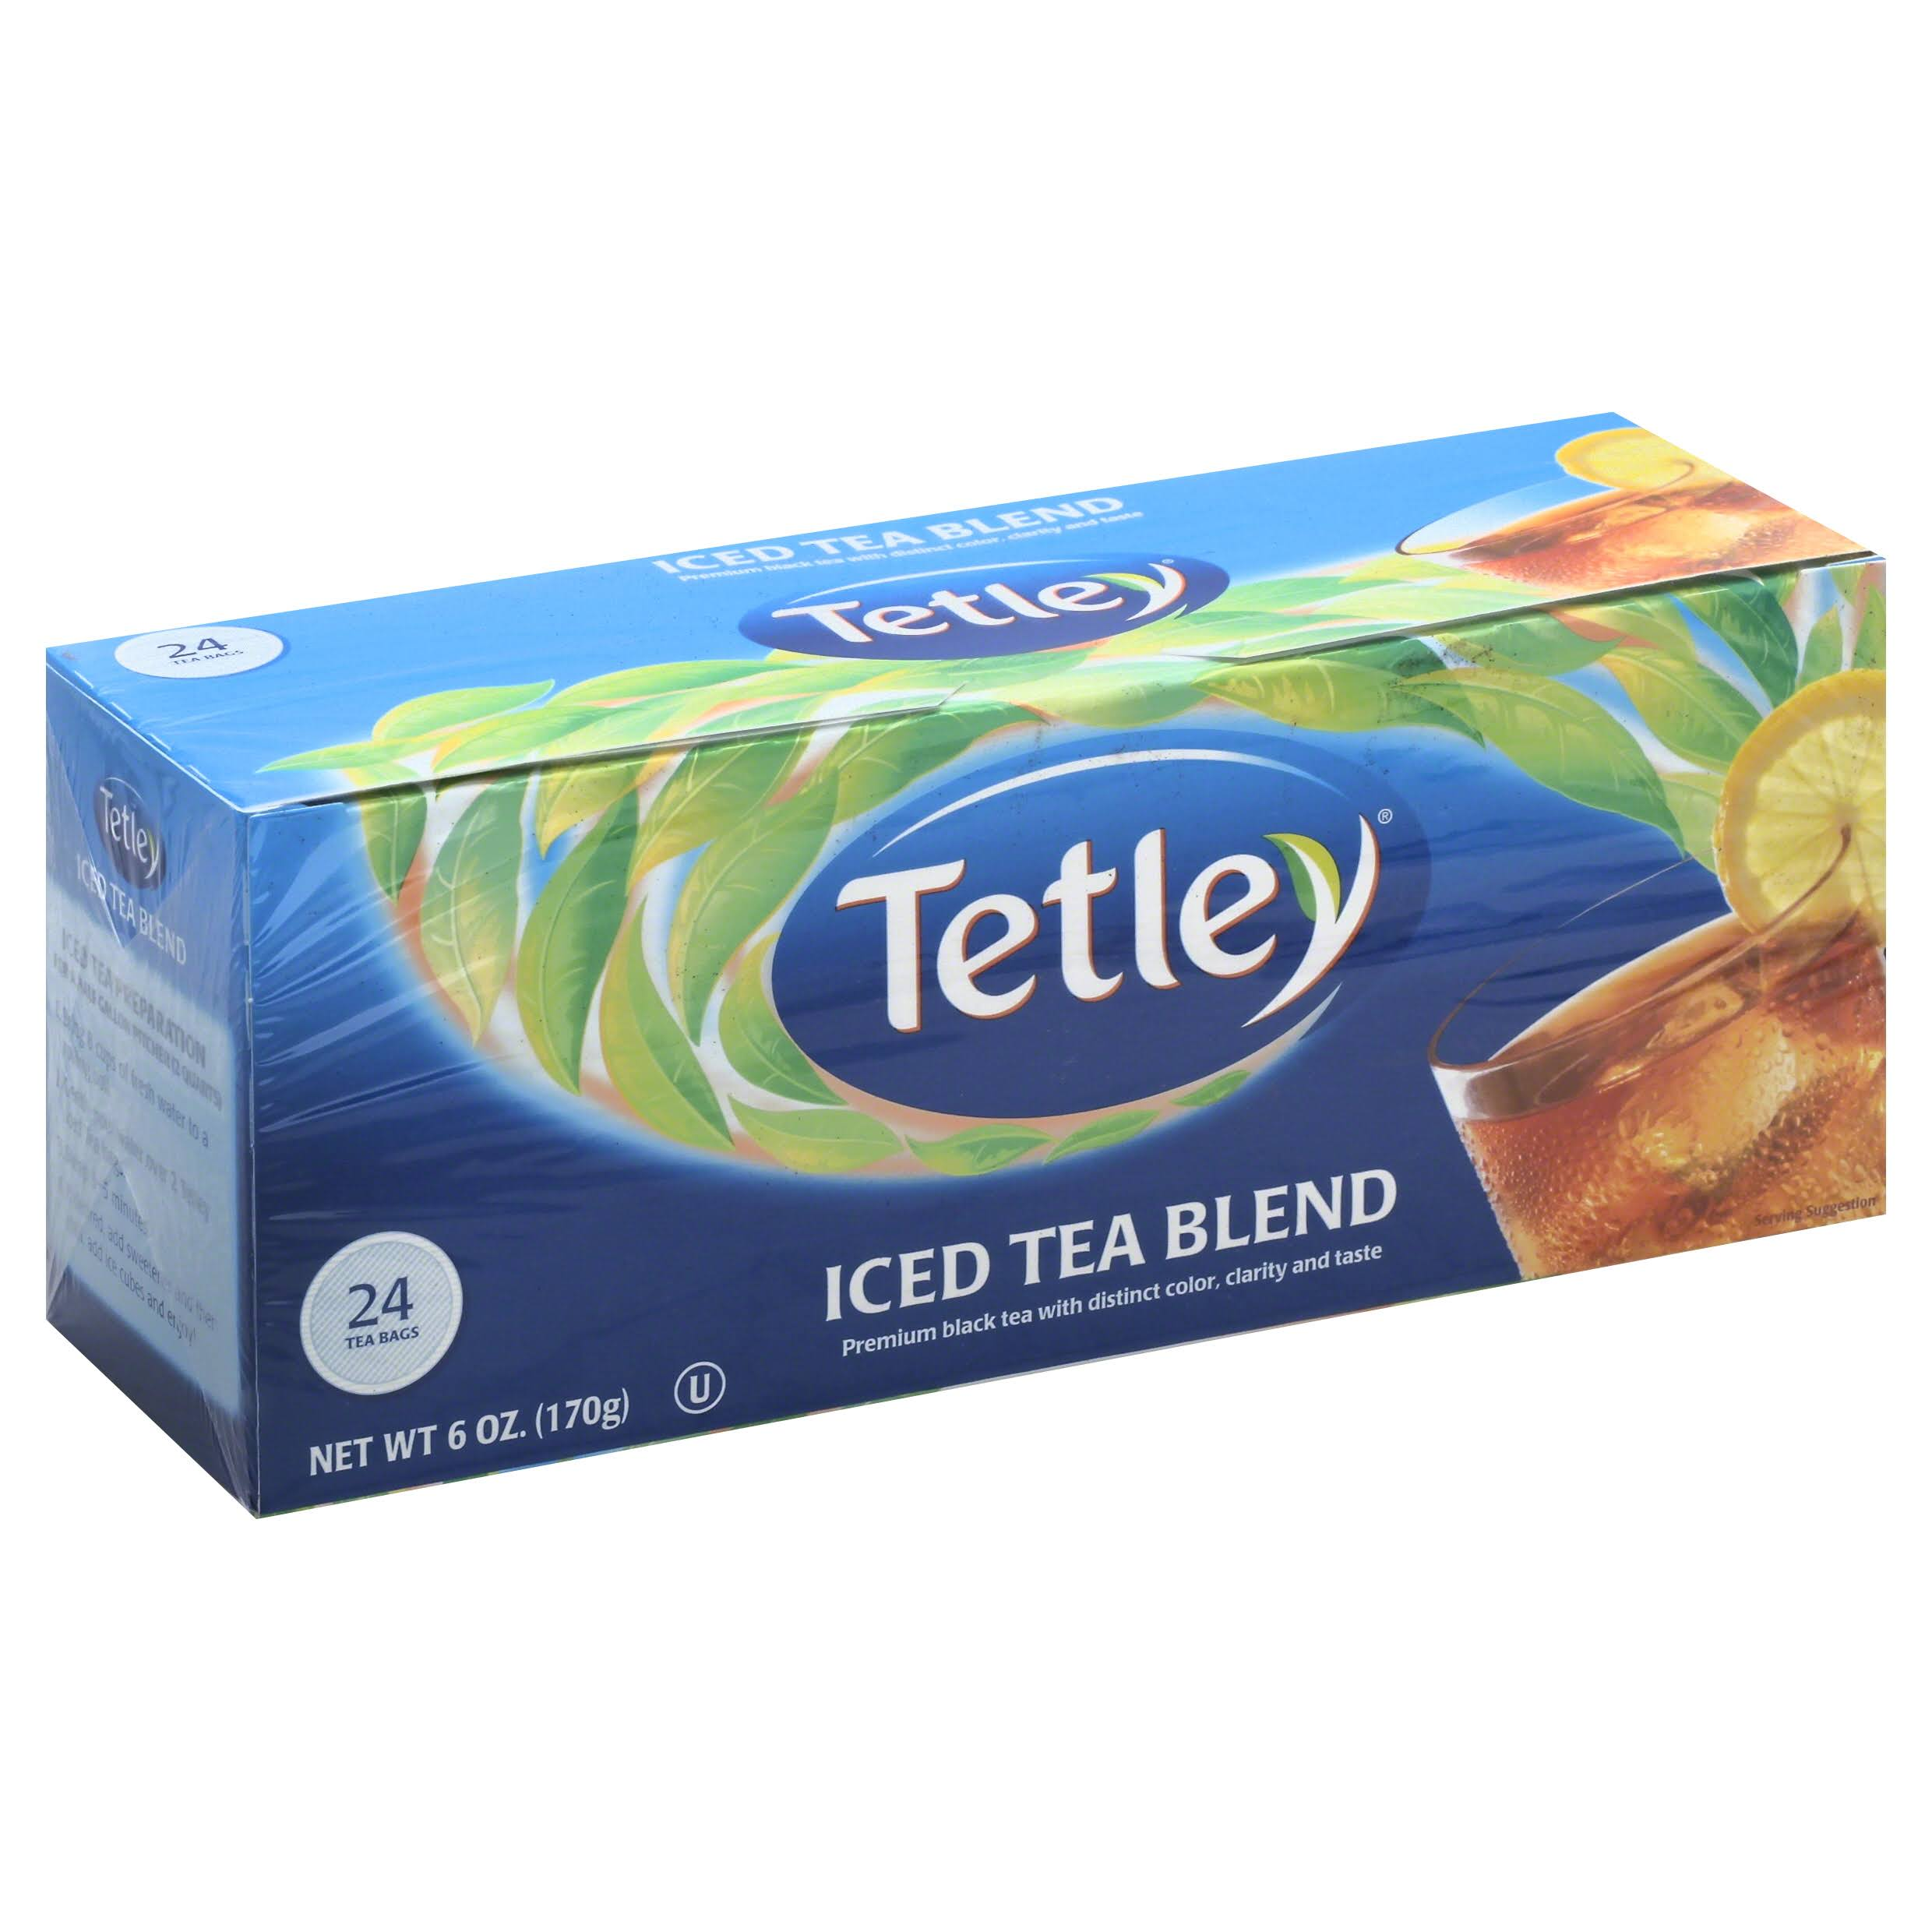 Tetley Iced Tea Bags - 24ct, 6oz